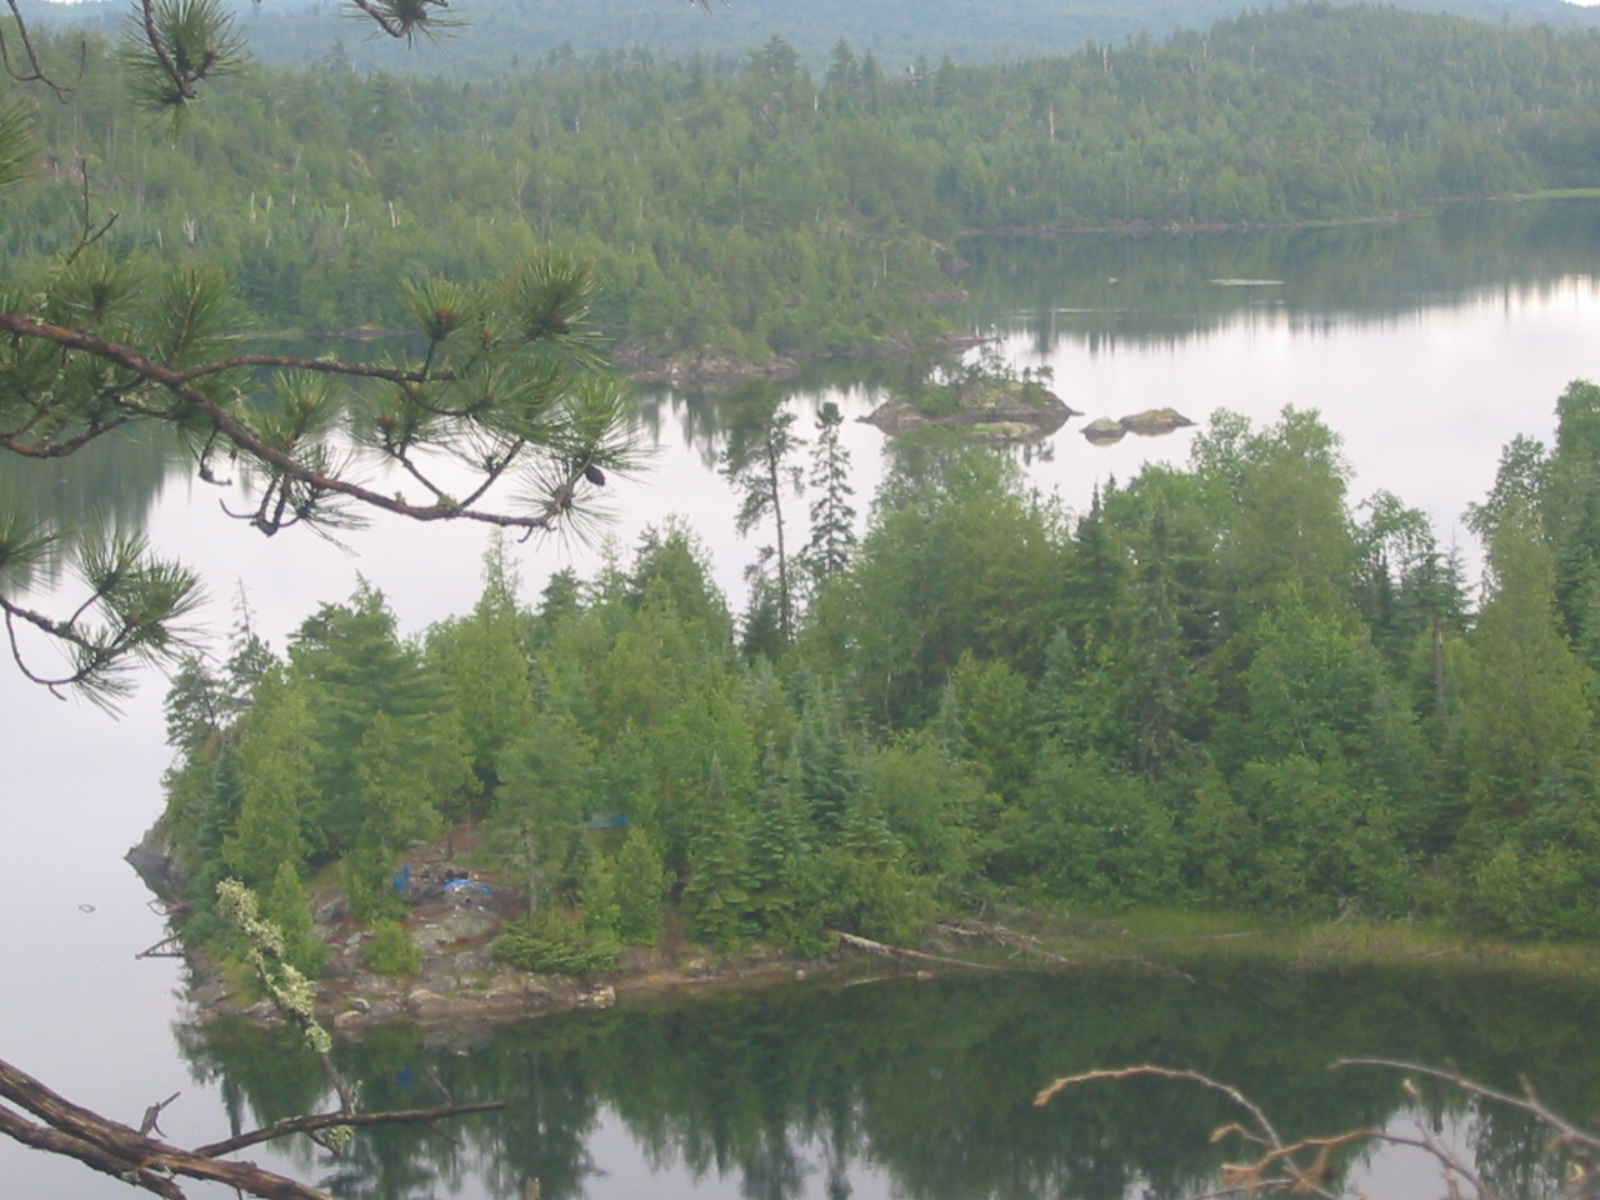 Bwca mudro to jackfish in may 2011 crappies anyone for Boundary waters fishing